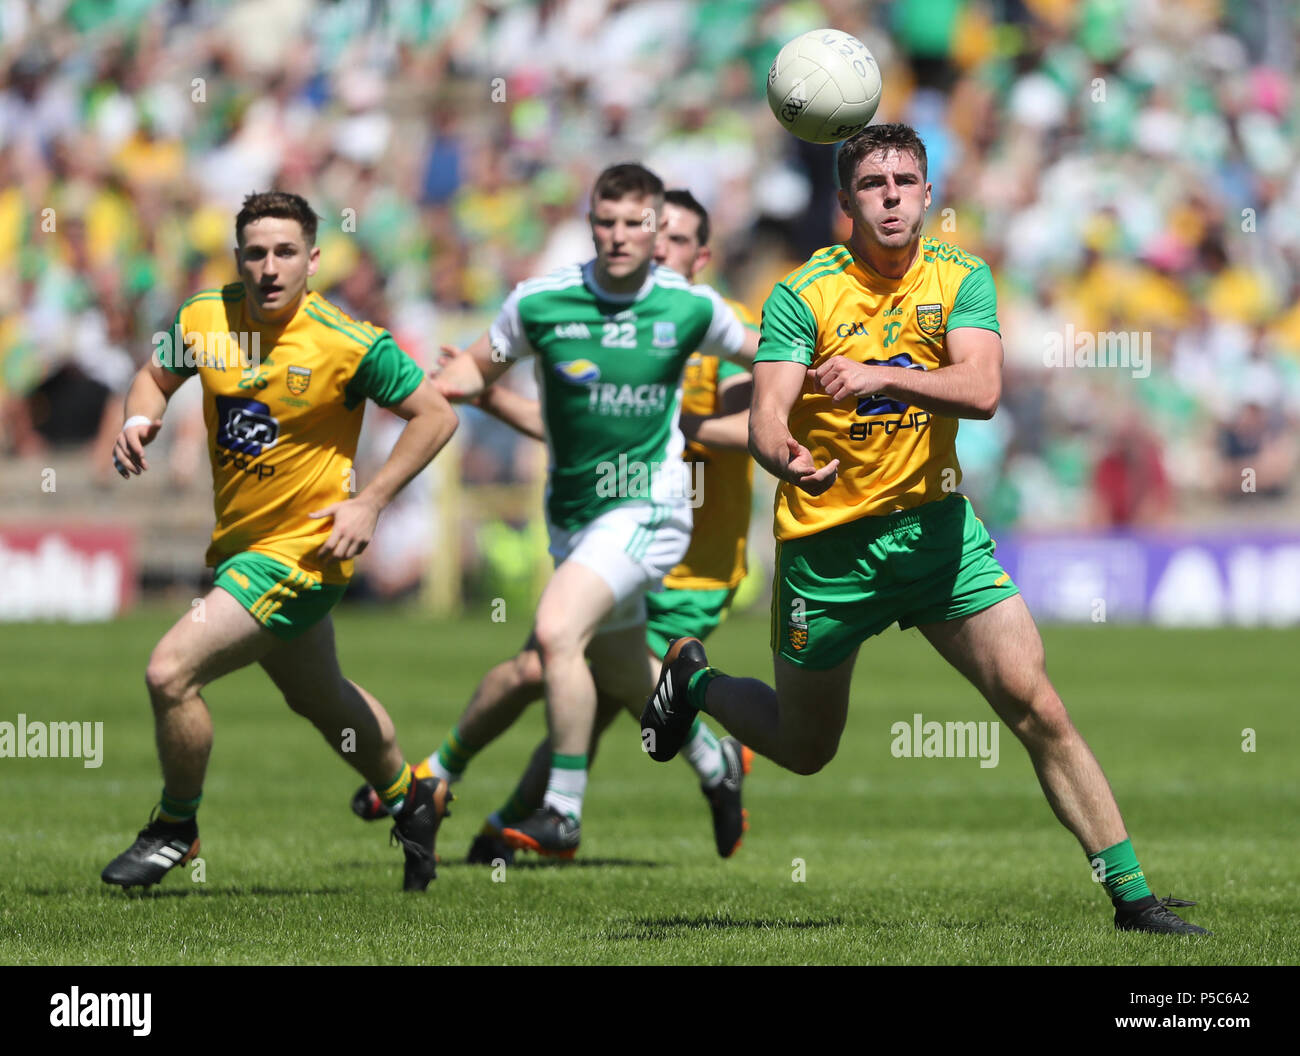 Donegal's Daire O Baoill on the ball during the GAA Ulster Final in Clones, Co Monaghan, Ireland. - Stock Image